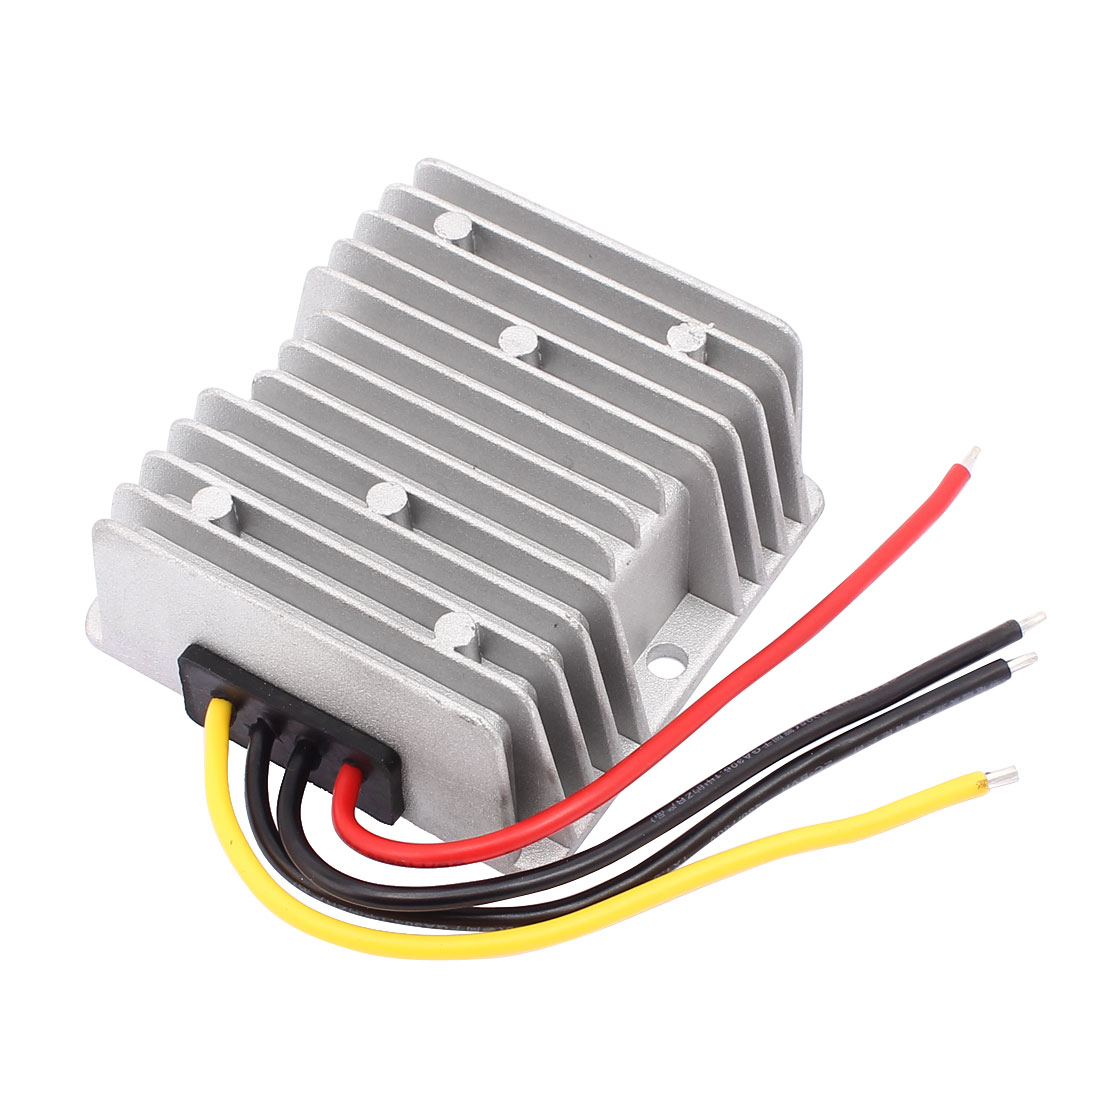 DC24V(18V~40V) Step-Down to DC13.8V 20A 276W Waterproof Power Converter Regulator Transformer